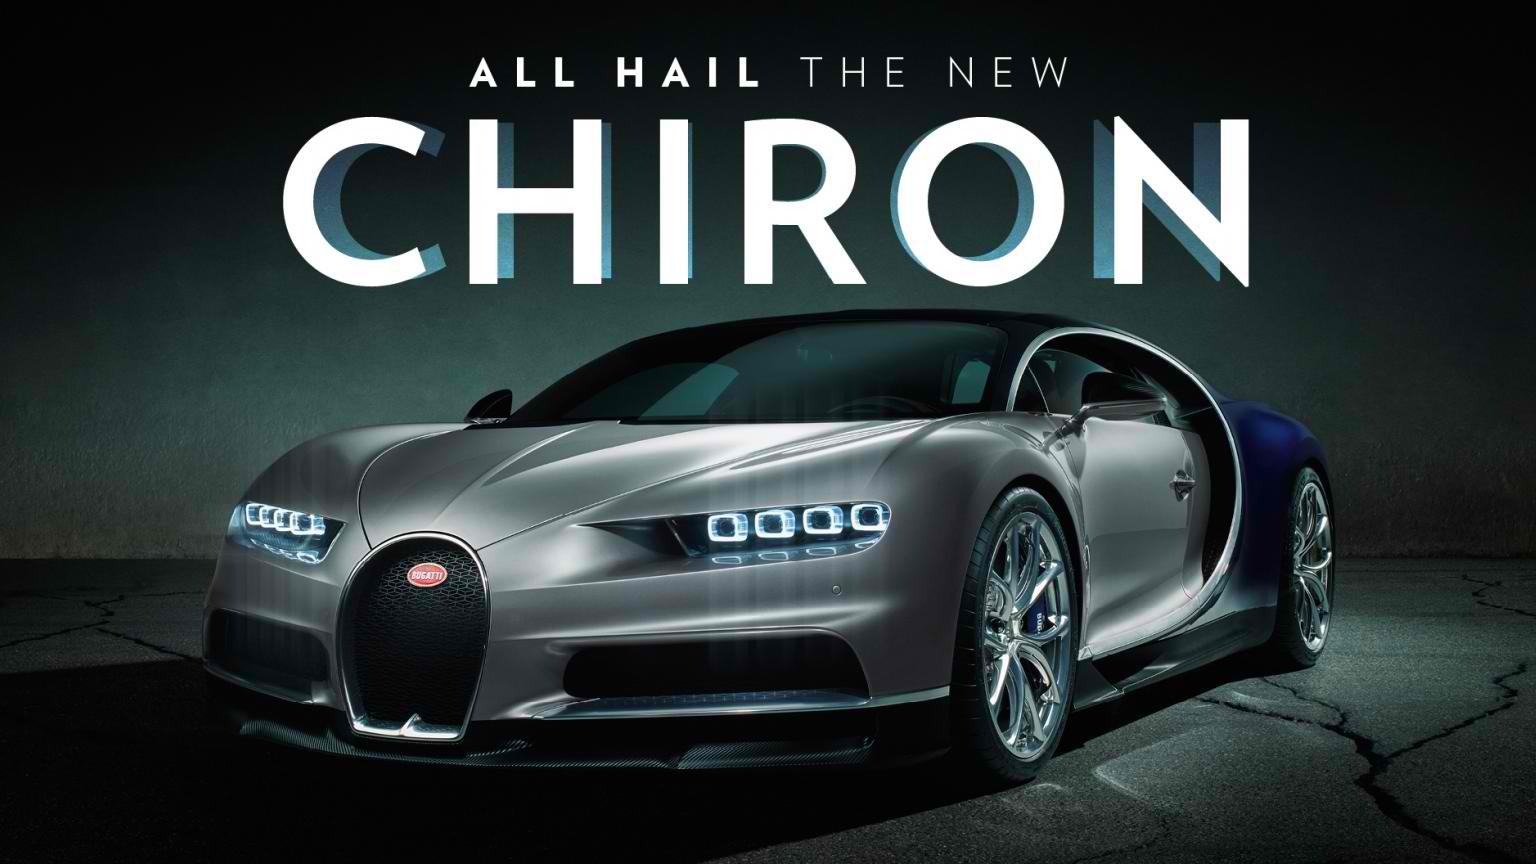 bugatti chiron usurps the veyron as the world s fastest. Black Bedroom Furniture Sets. Home Design Ideas